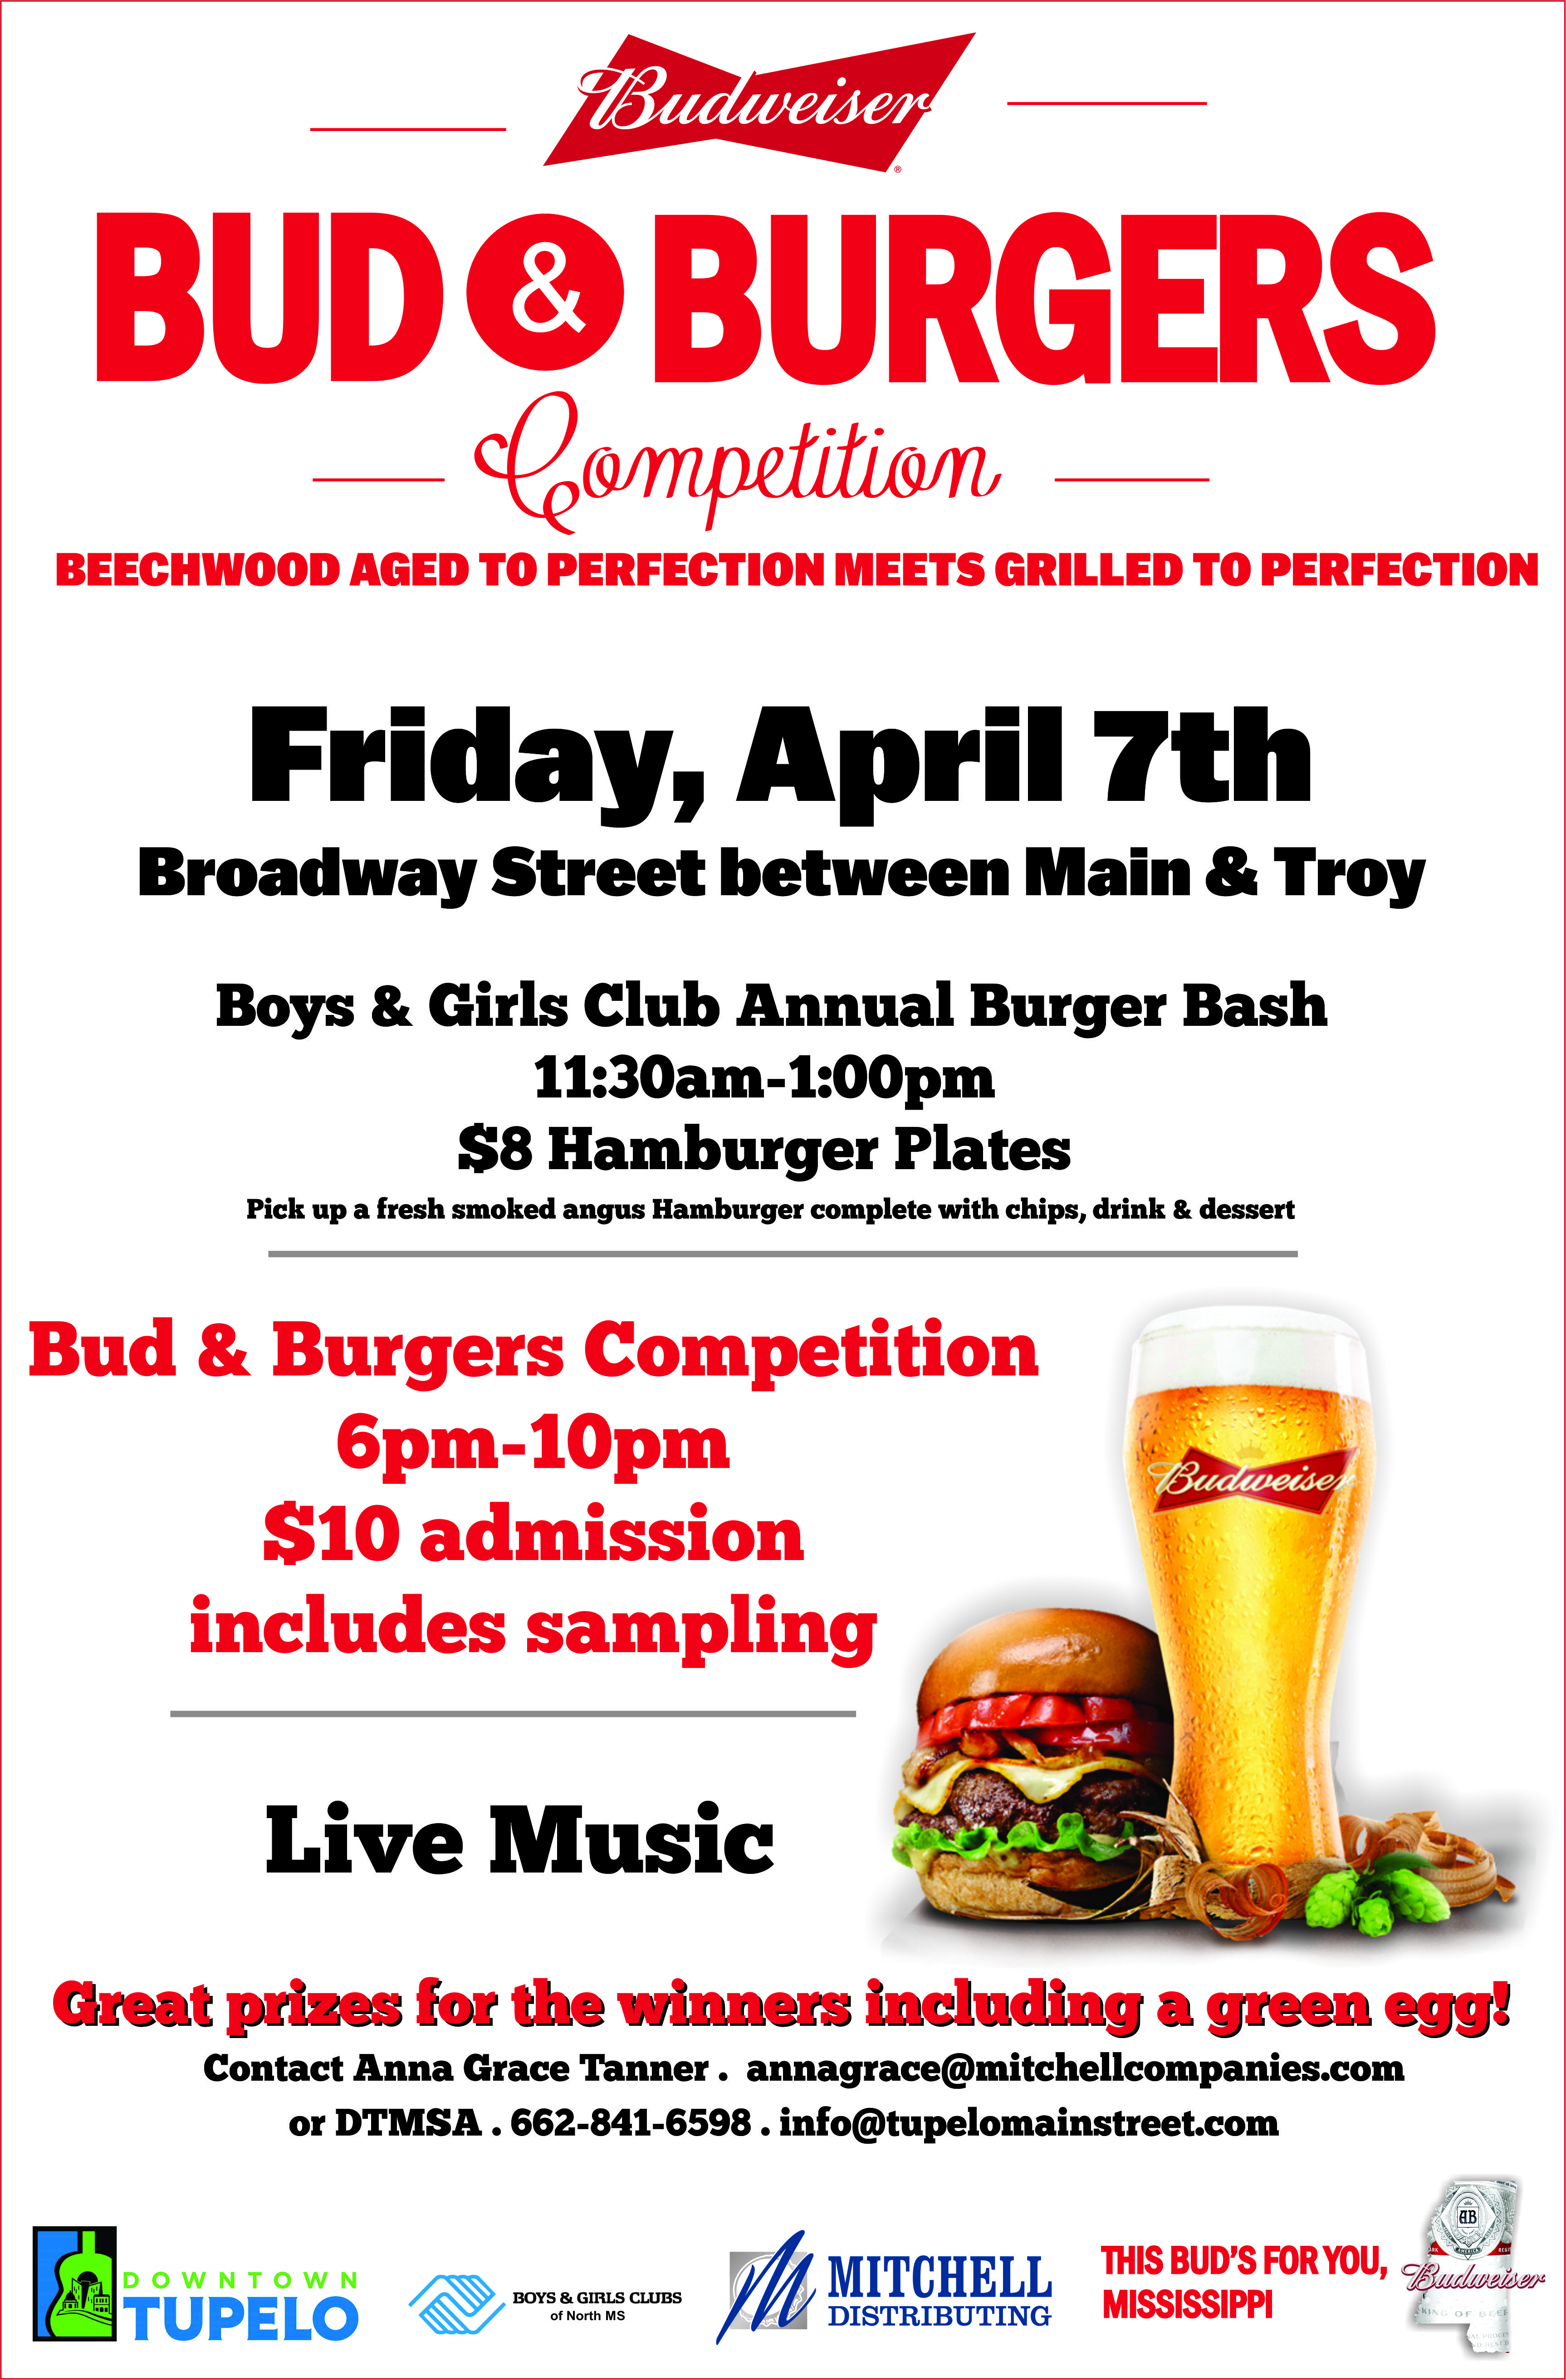 Apr. 7: Bud and Burgers in Tupelo